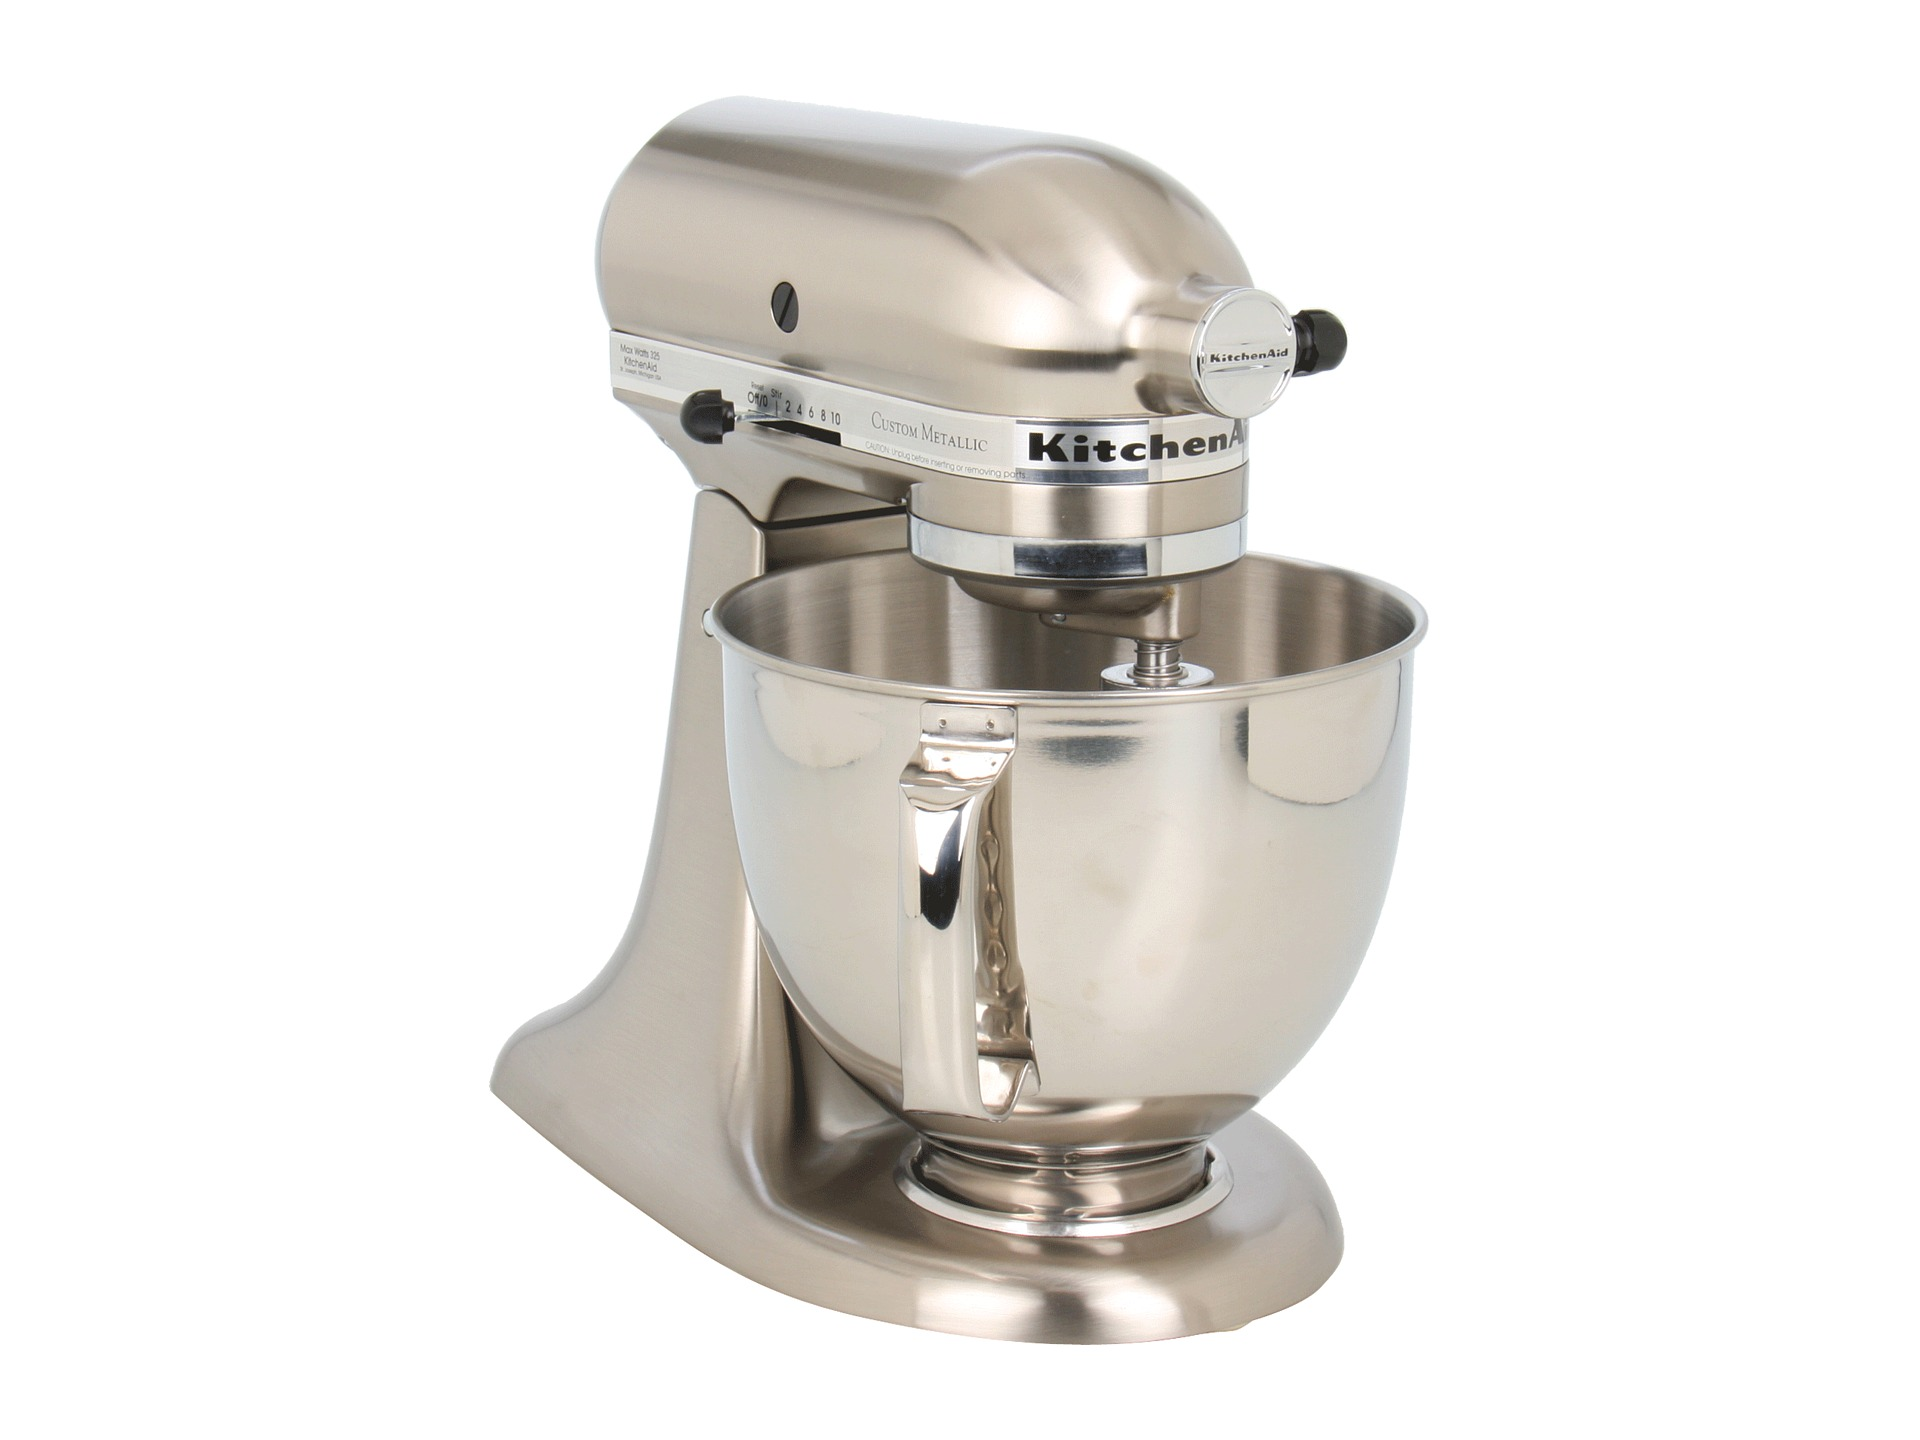 KitchenAid KSM152PS Custom Metallic Series 5 QT Stand Mixer